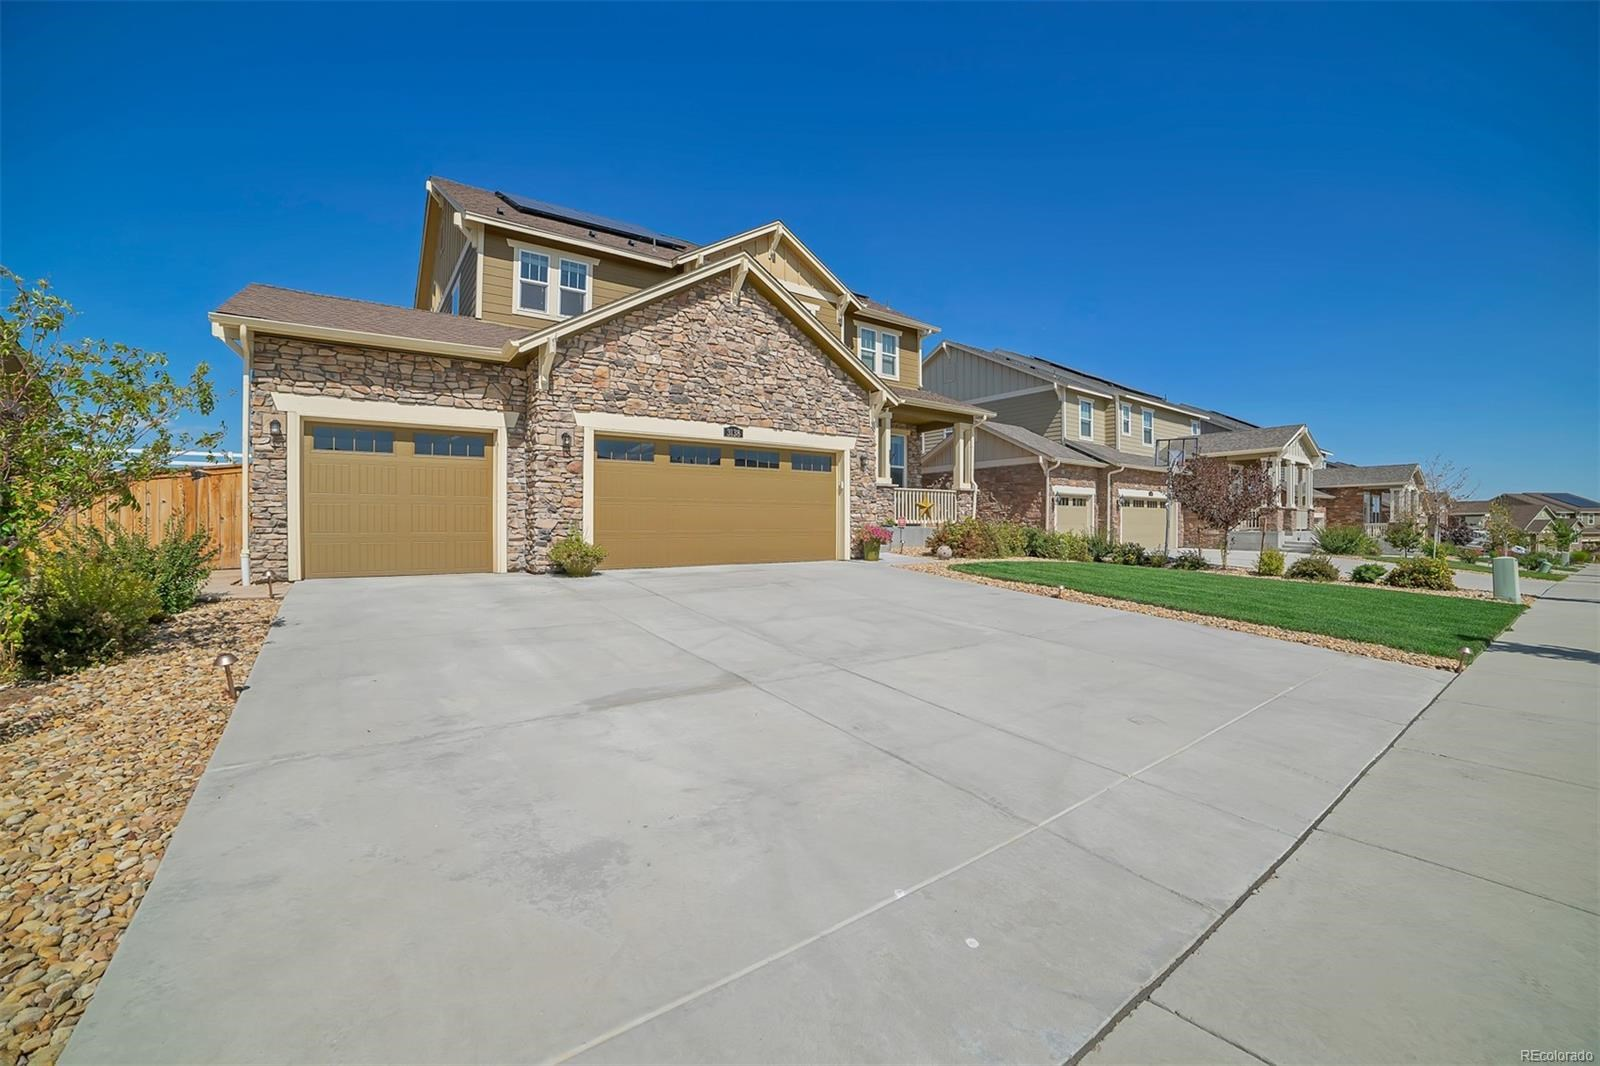 MLS# 2593781 - 2 - 3138 S Nepal Way, Aurora, CO 80013